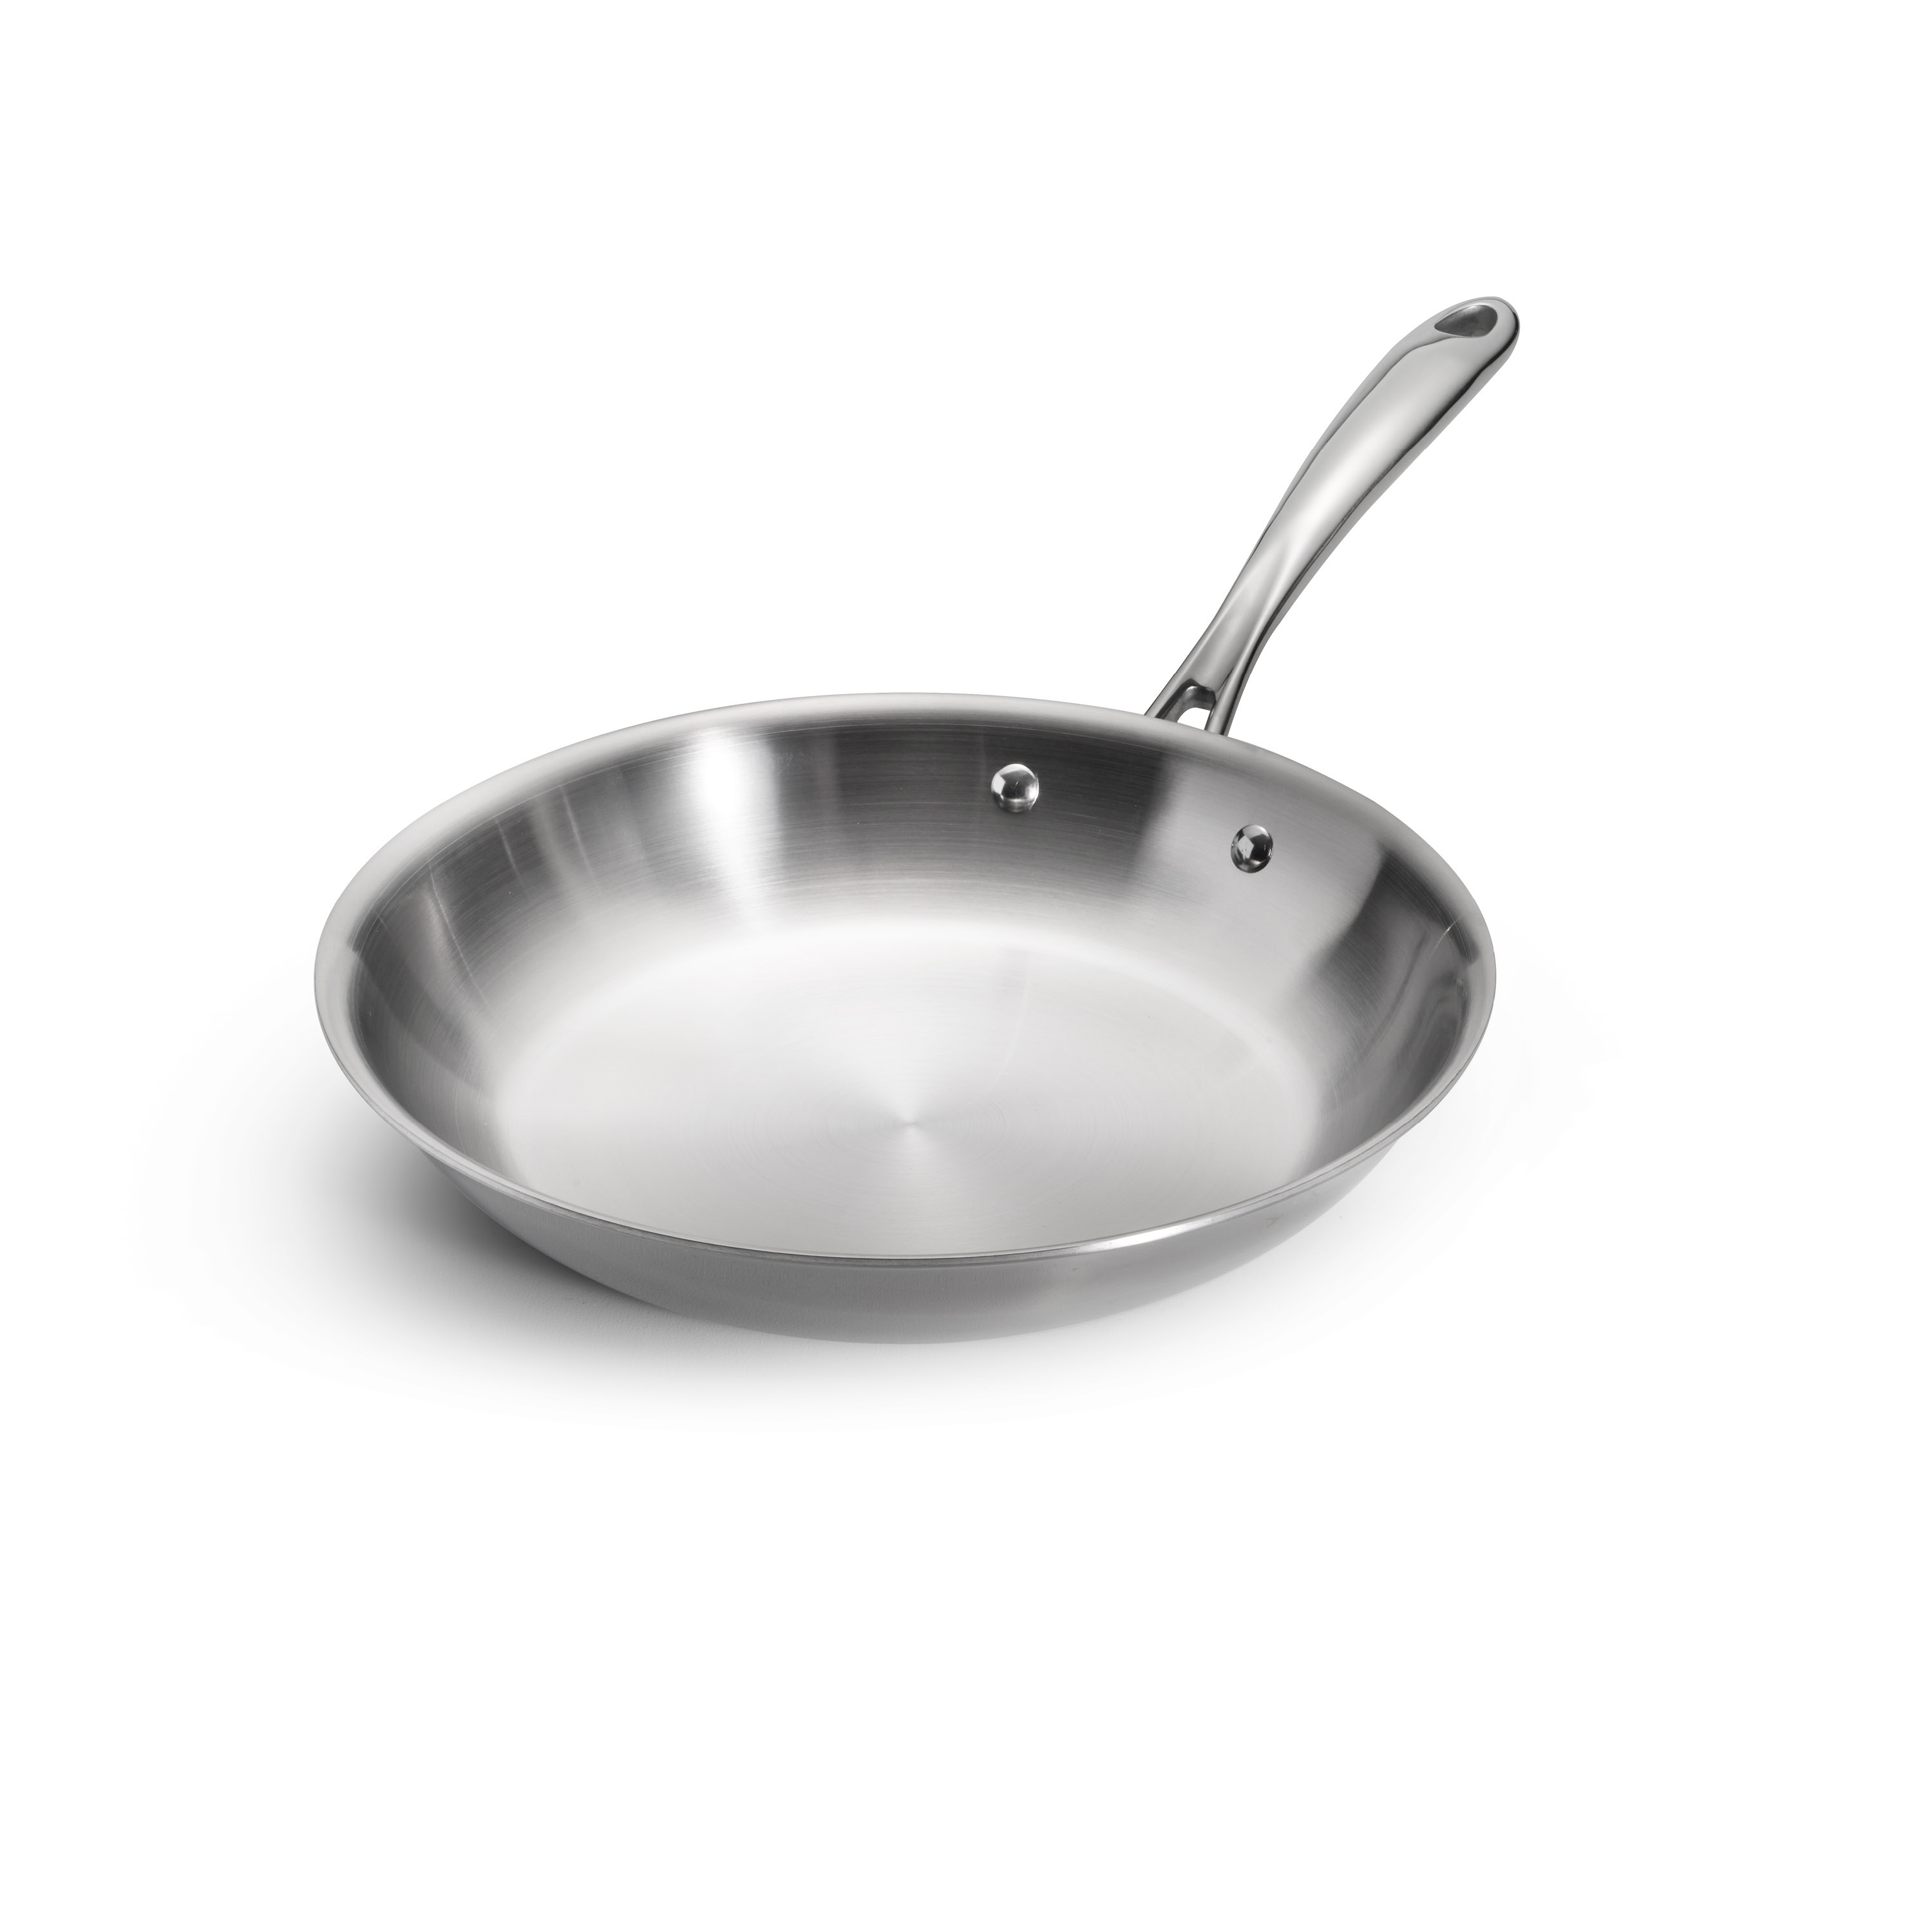 Tramontina 10 Inch Stainless Steel Tri Ply Clad Saute Pan